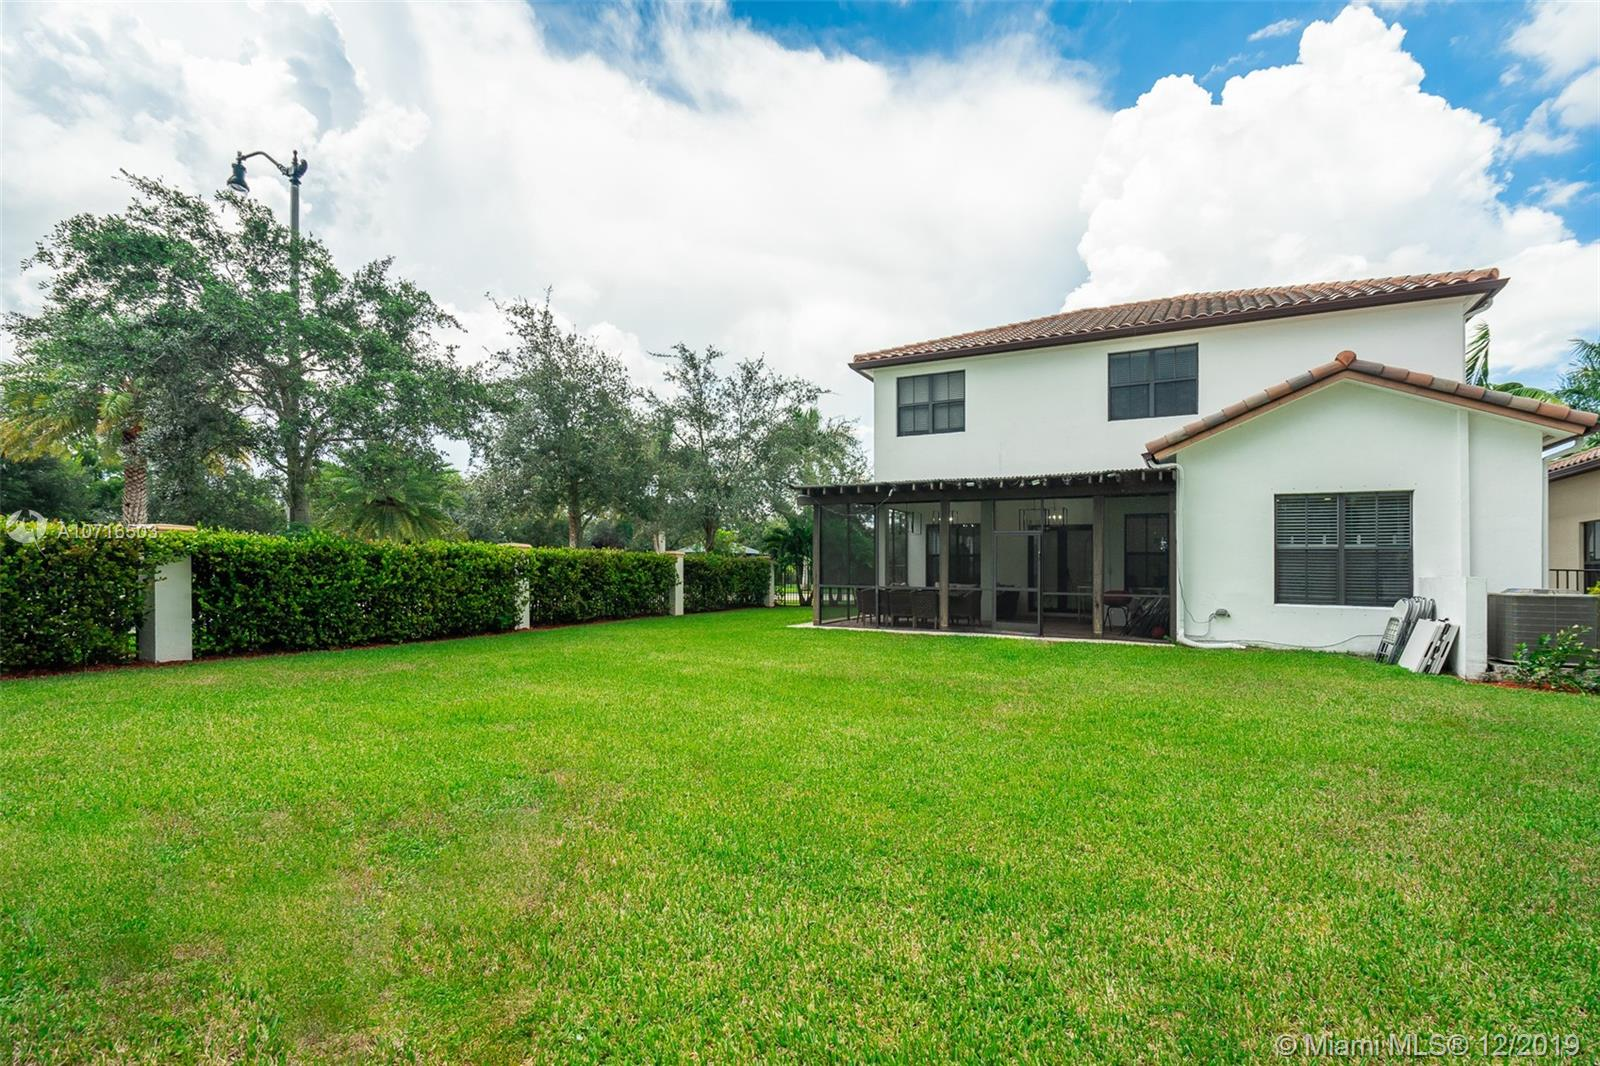 Listing A10716503 - Large Photo # 37